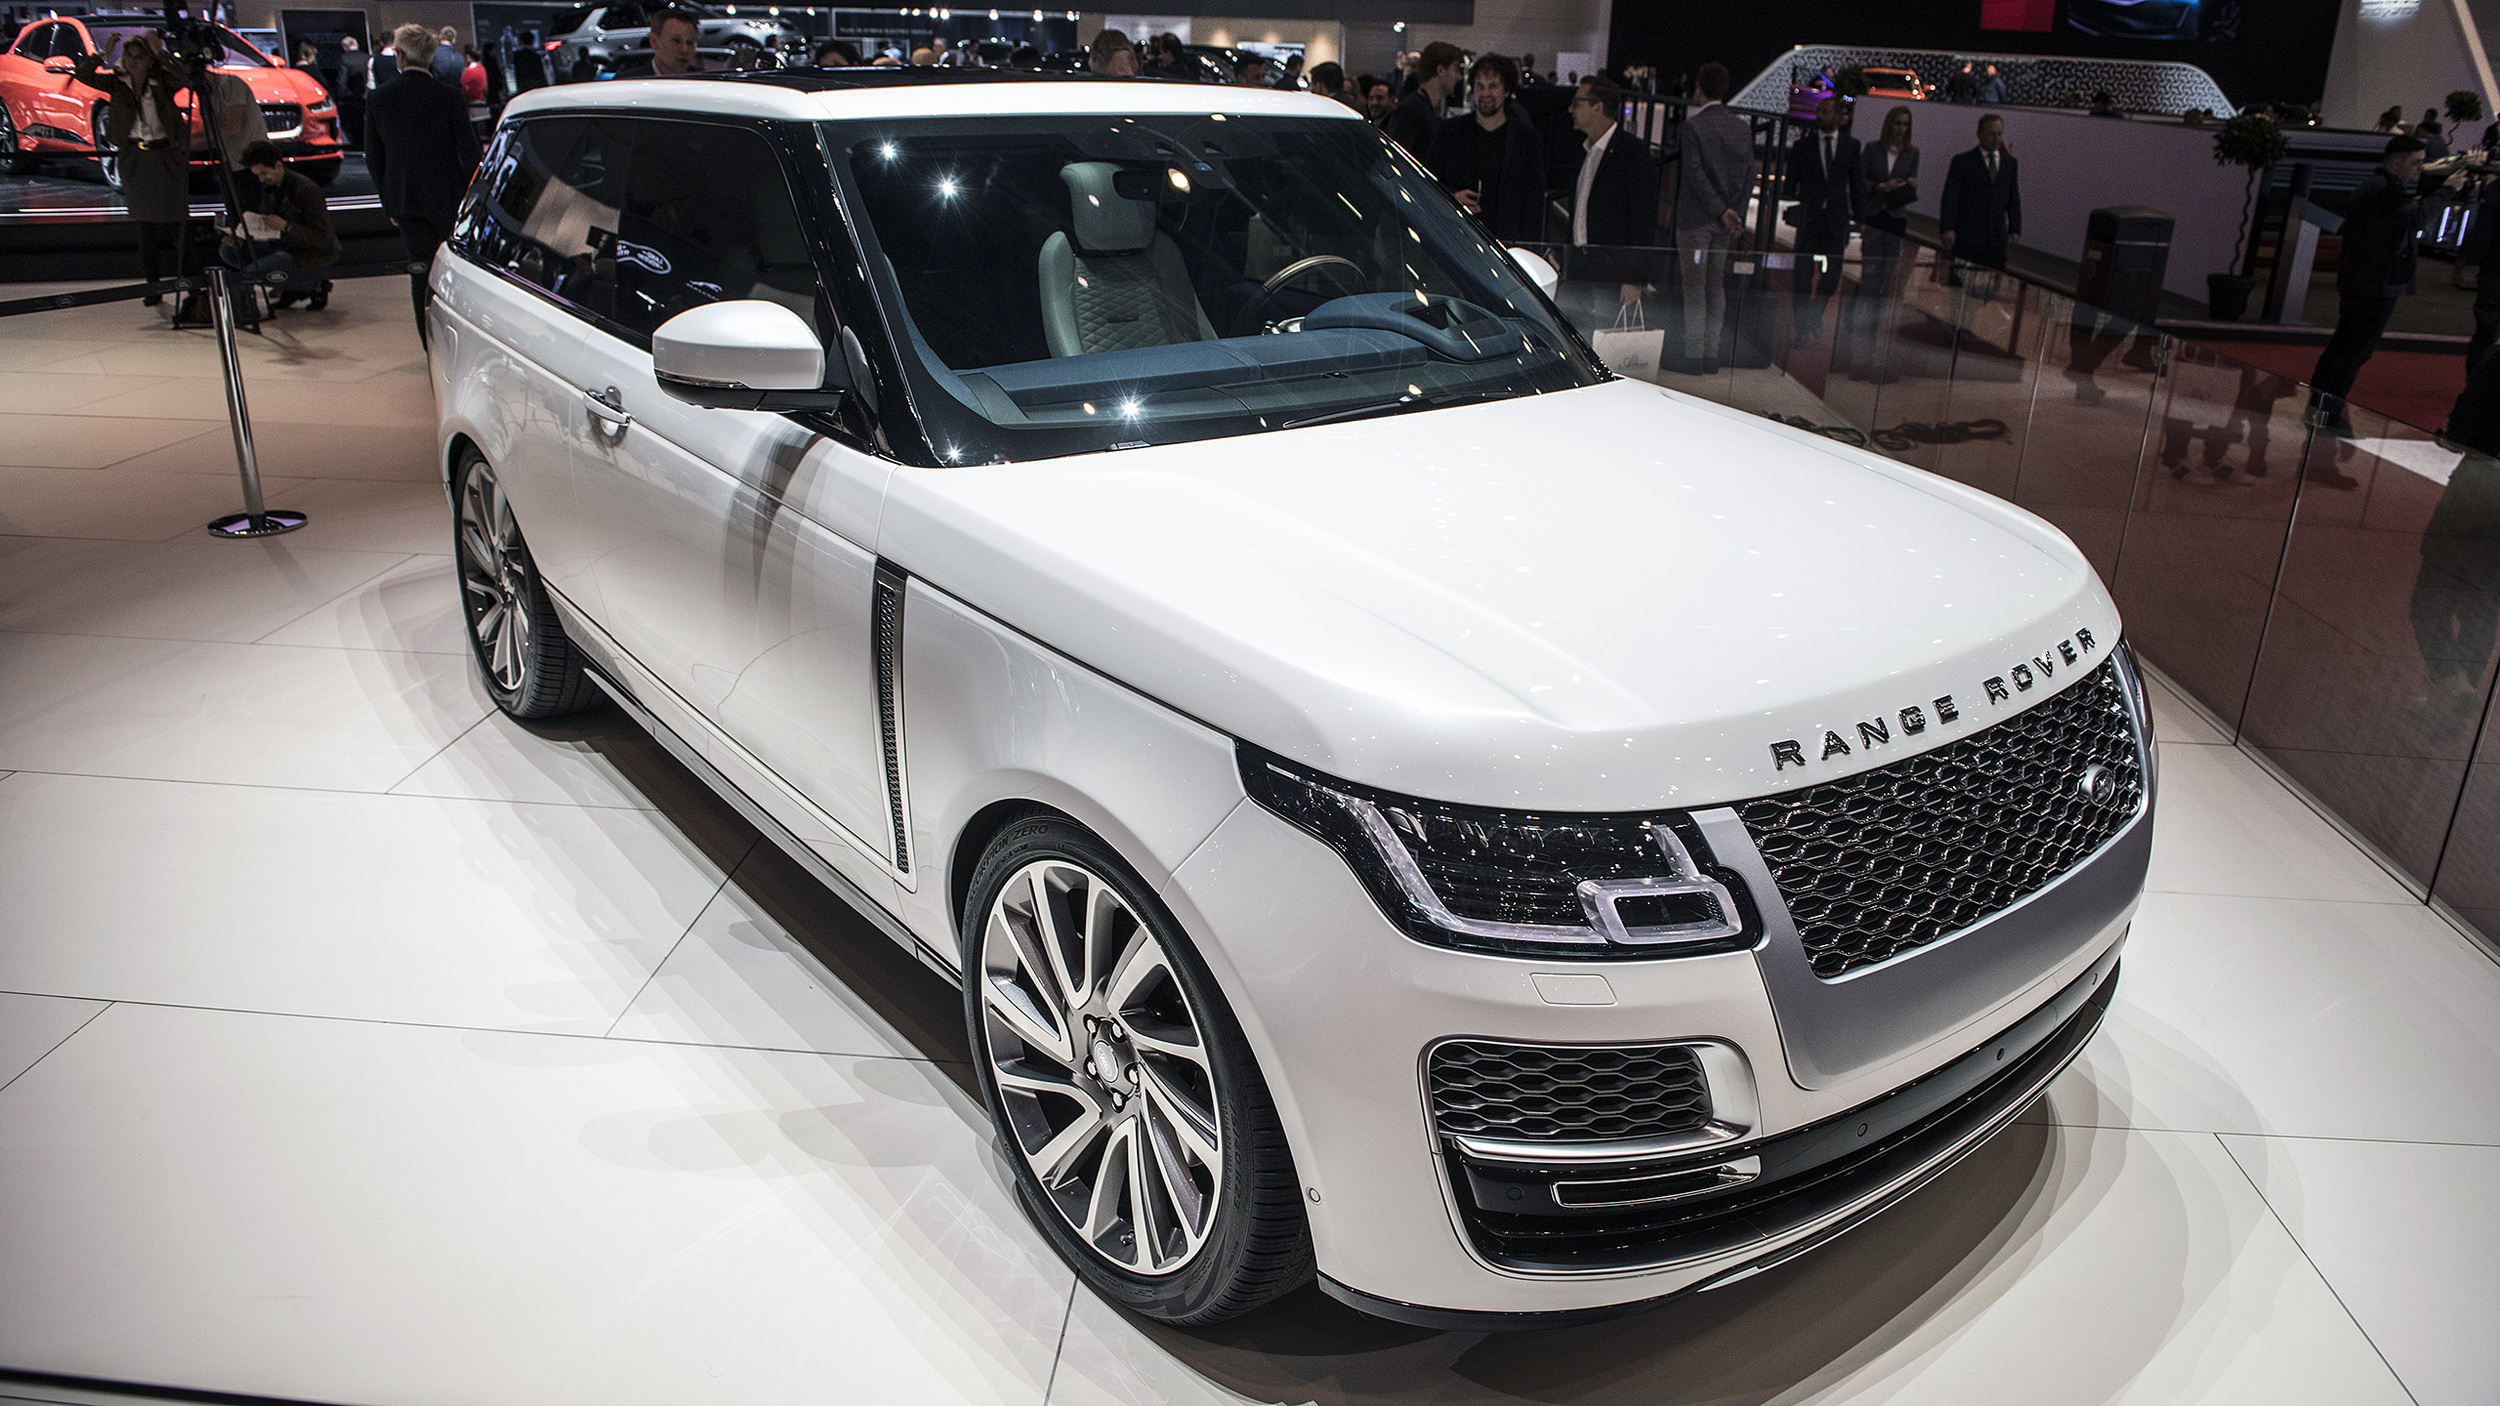 2019 range rover sv coupe geneva 2018 autoblog. Black Bedroom Furniture Sets. Home Design Ideas